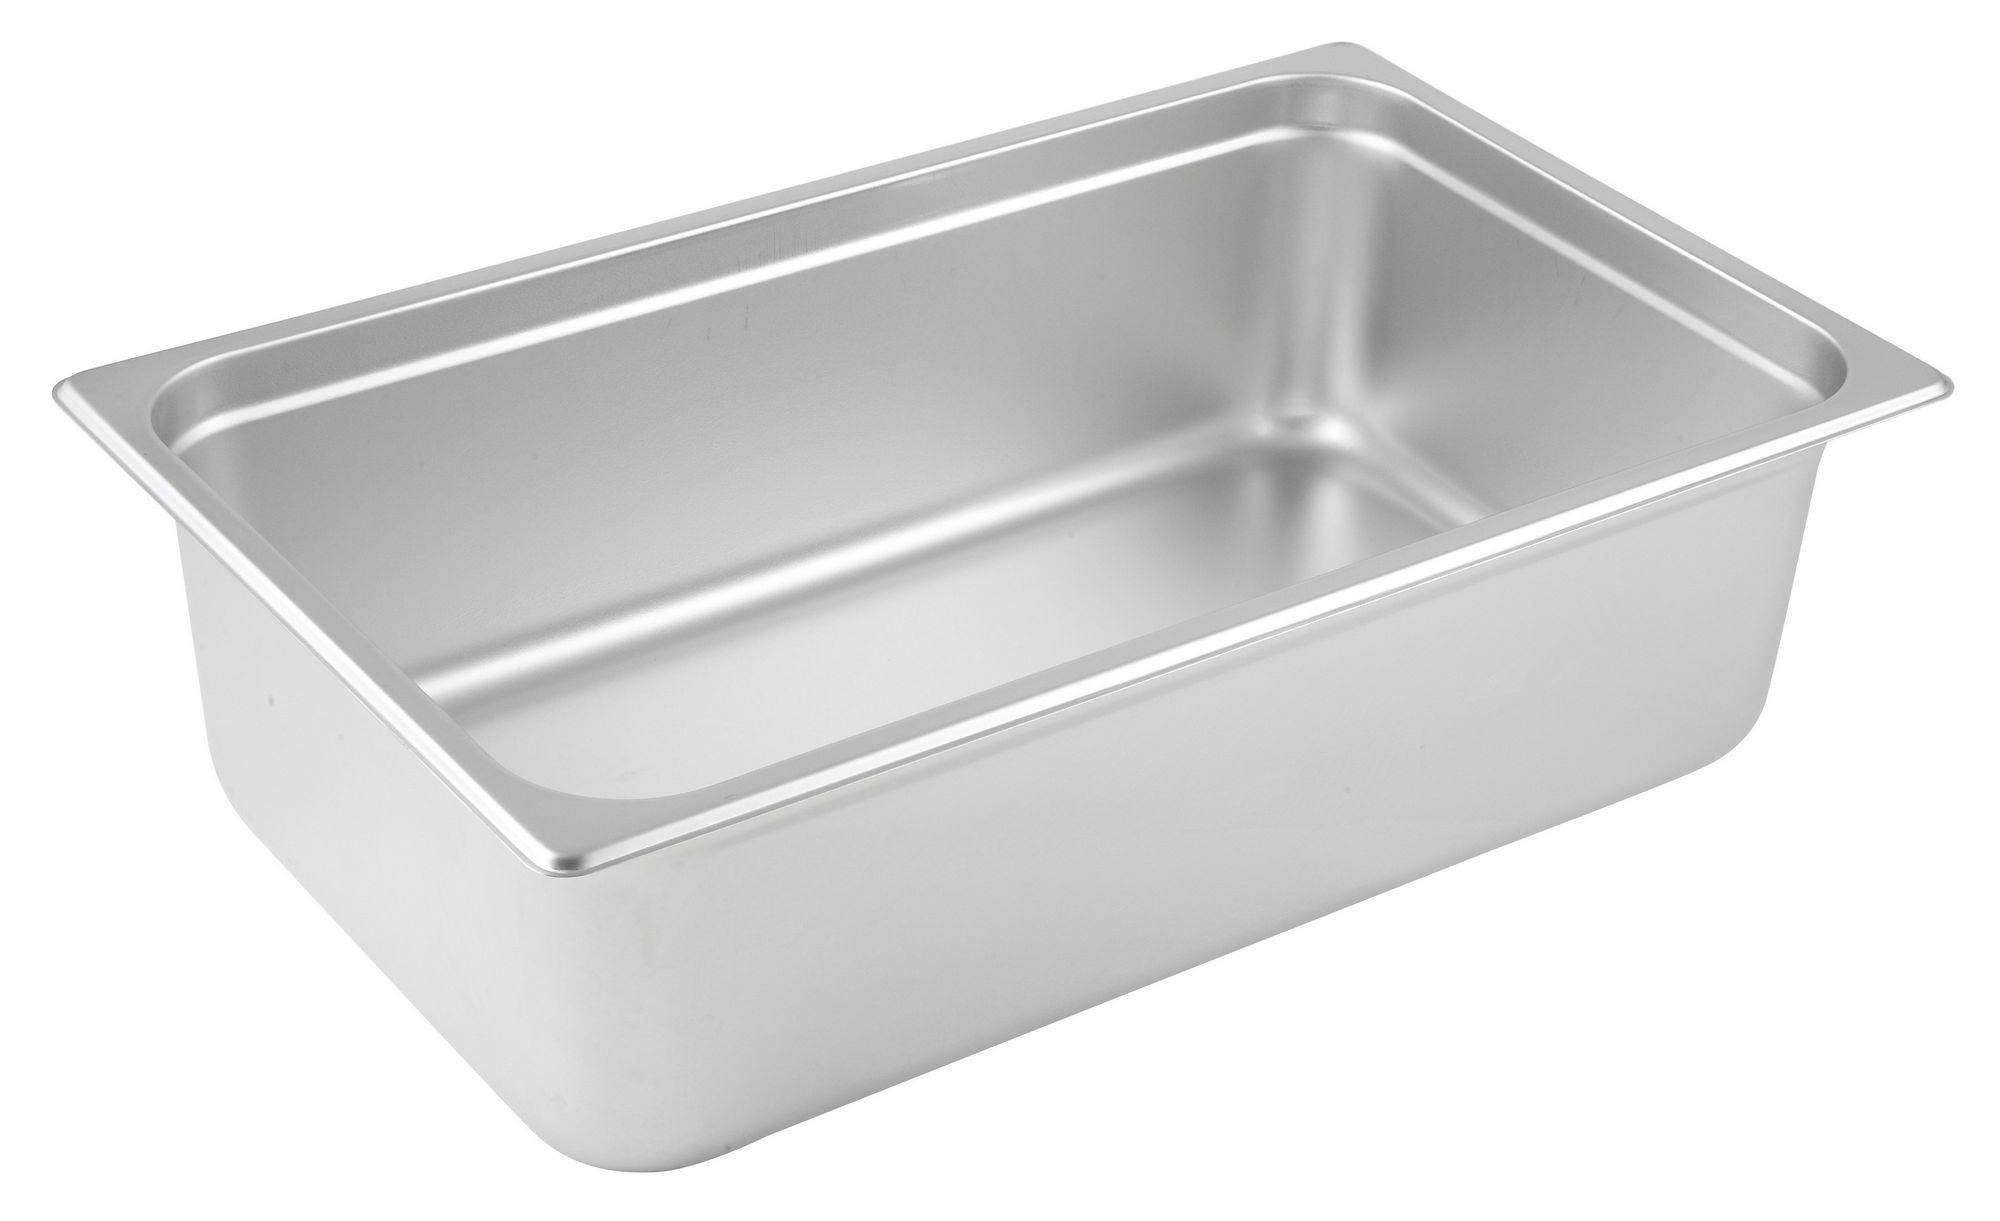 "Winco Spjl-106 Full Size Anti-Jam 25 Gauge Steam Table Pan 6"" Deep"